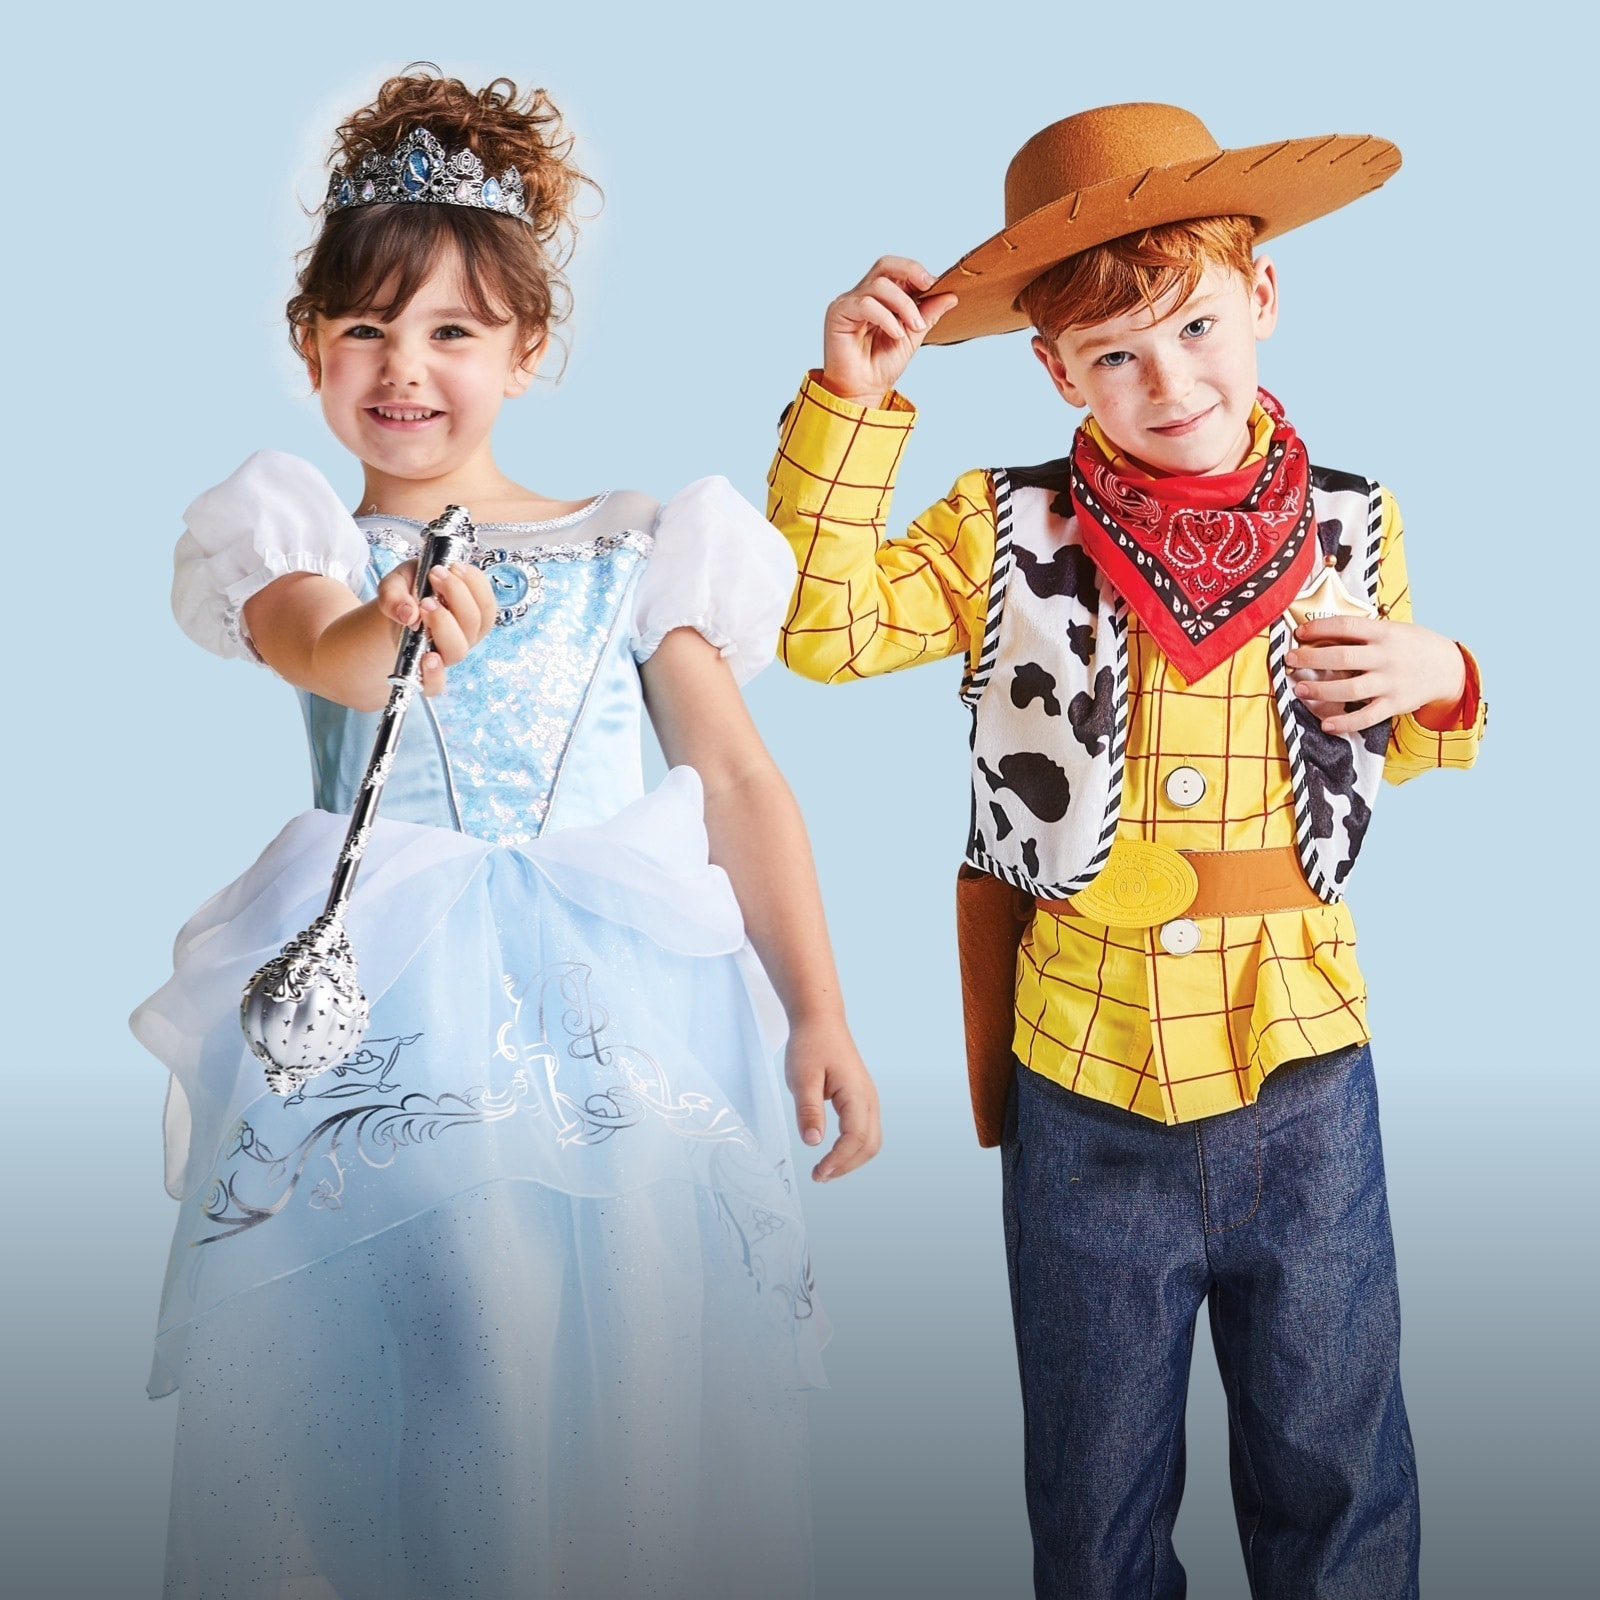 Fancy dress outfits inspired by Cinderella and Woody